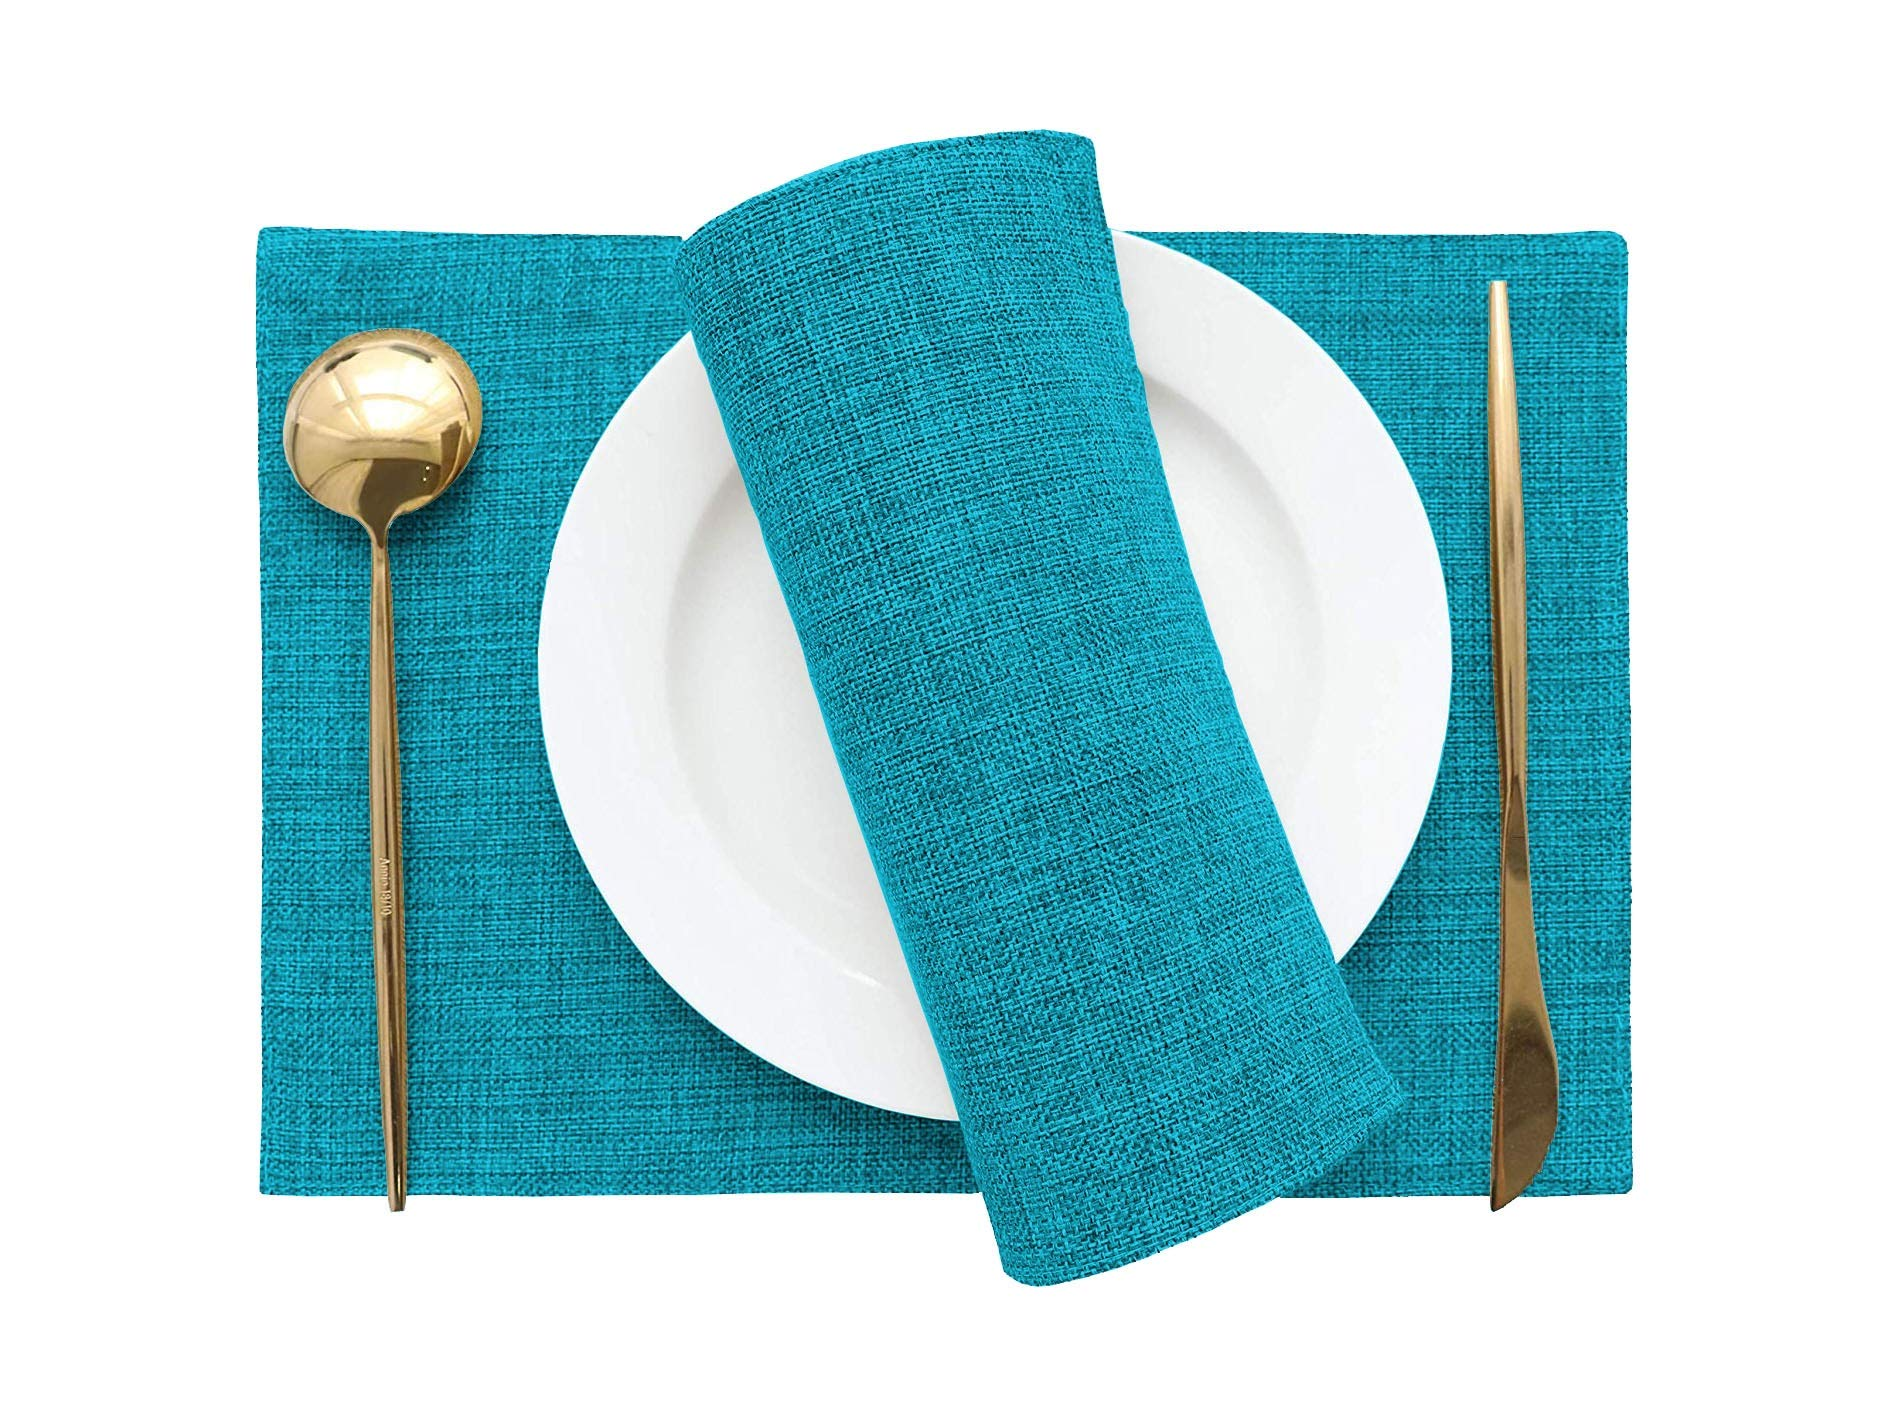 Khooti Jute Tablemats/Placemats Set of 4 Heat Resistant Dining Table Place Mats for Kitchen Table Party, 12 x 18 inches, (Bondi Blue) (B07Y2DZ5B2) Amazon Price History, Amazon Price Tracker